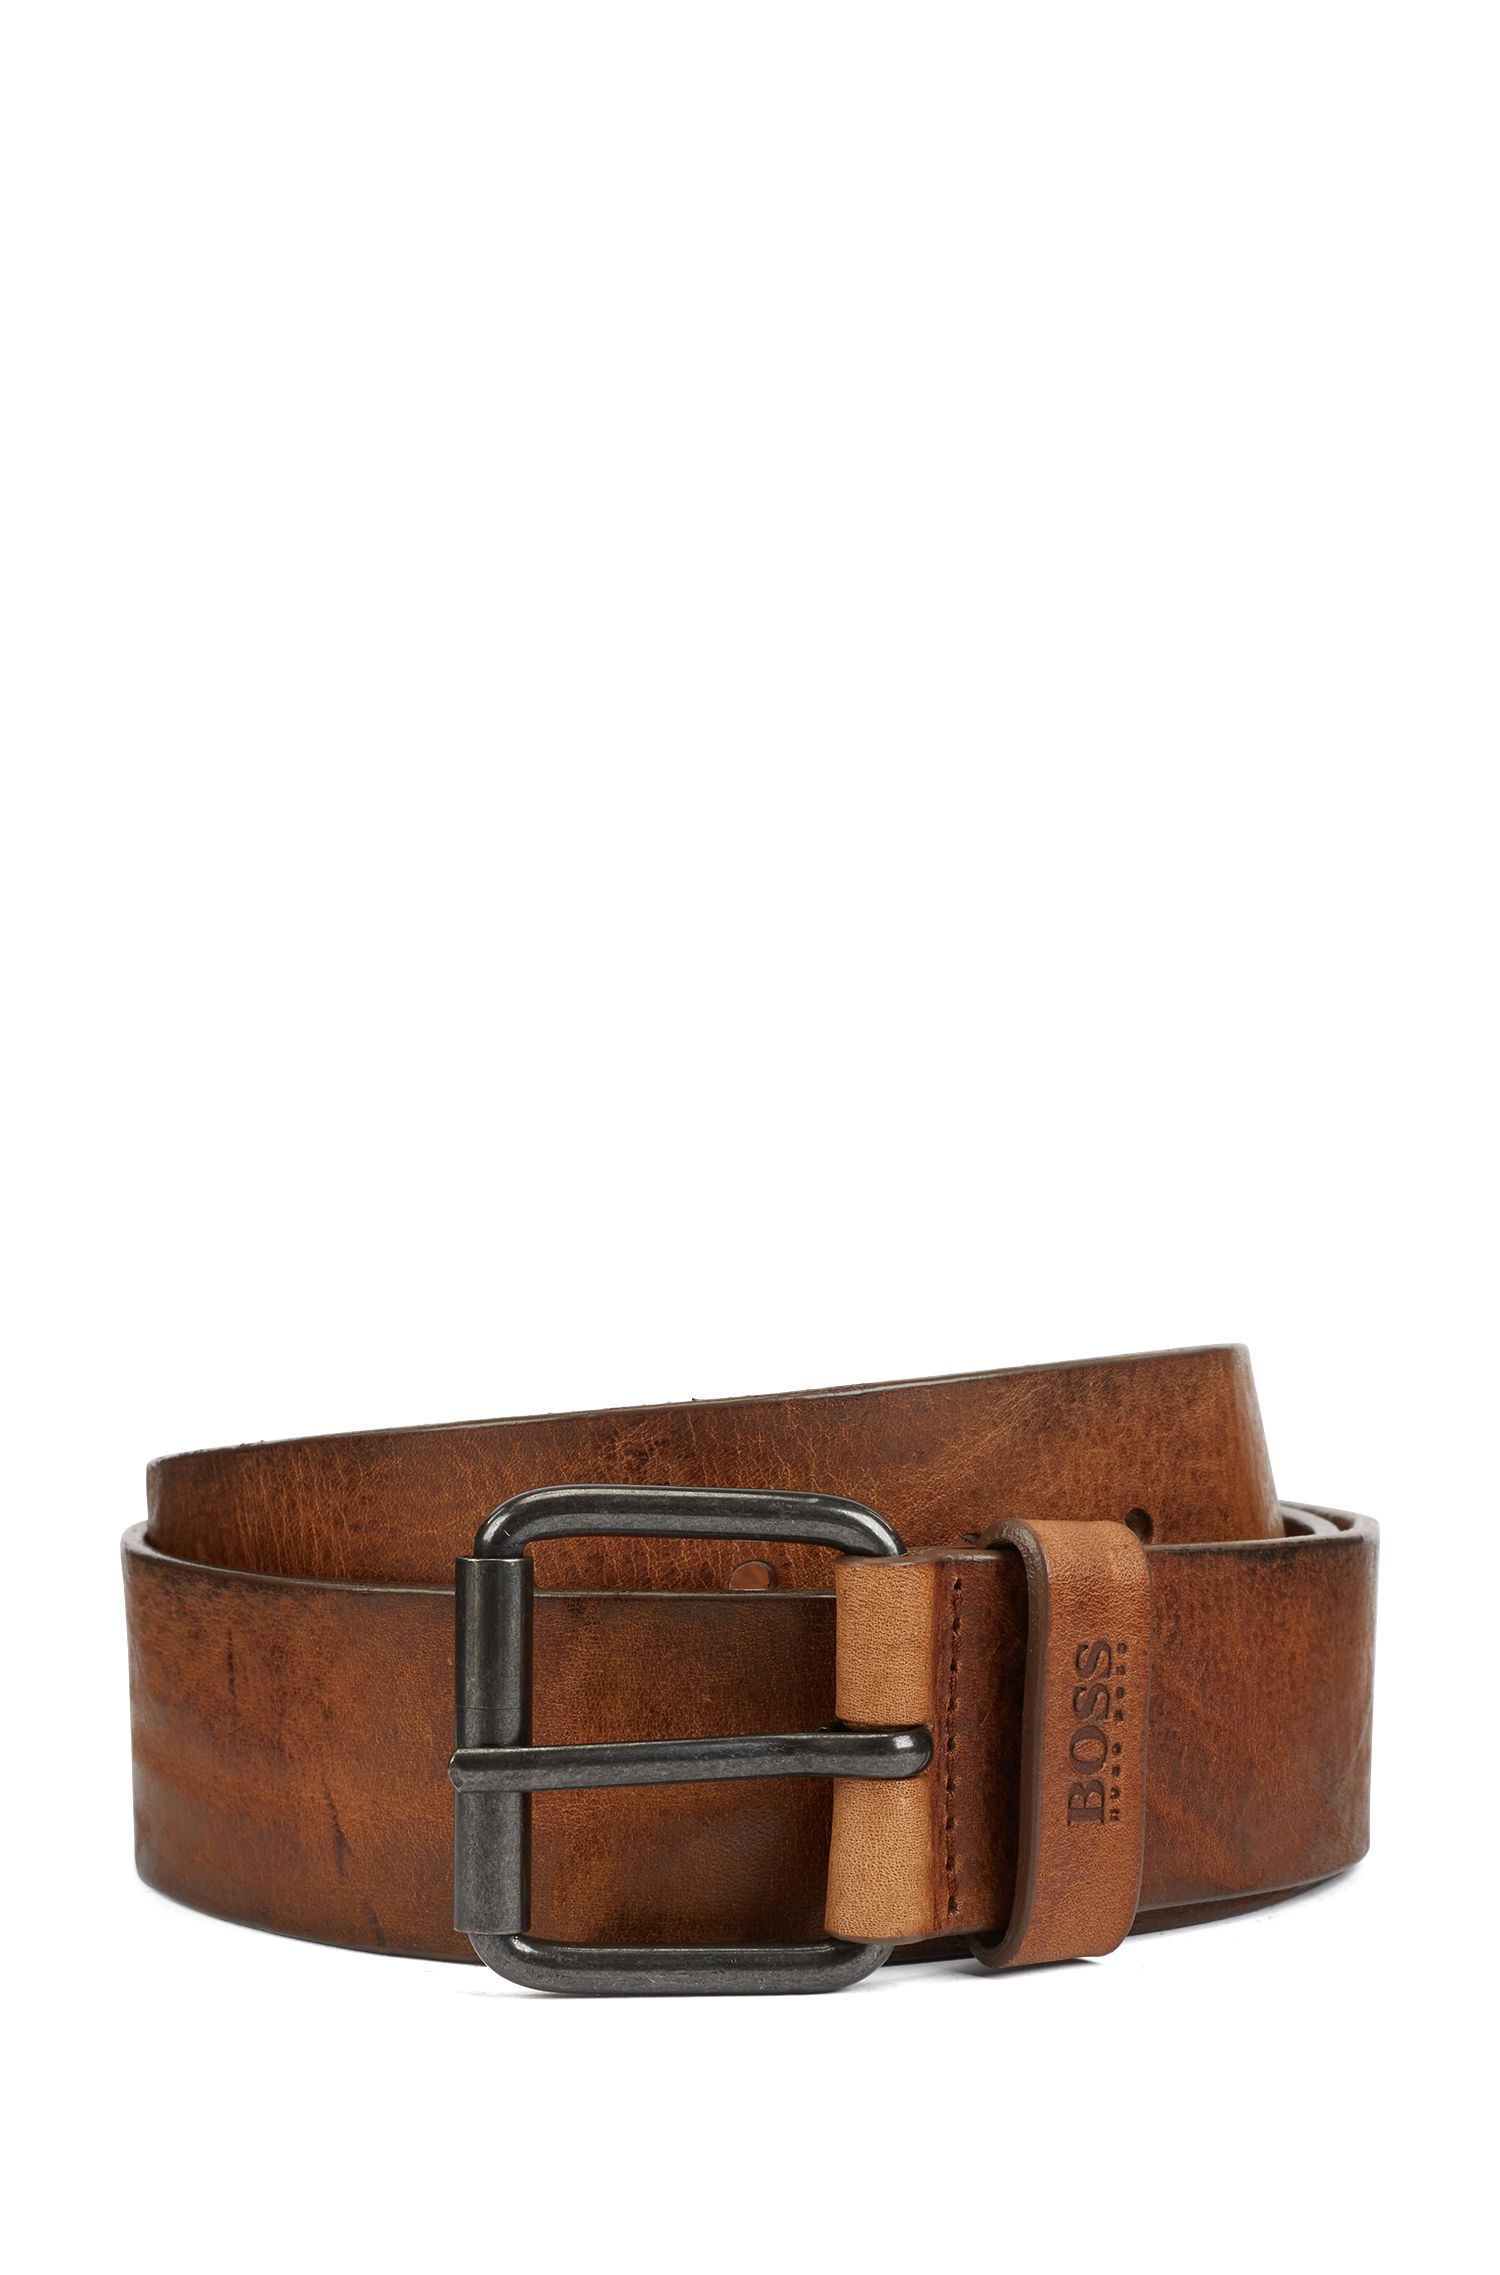 Roller-buckle belt in tumbled leather